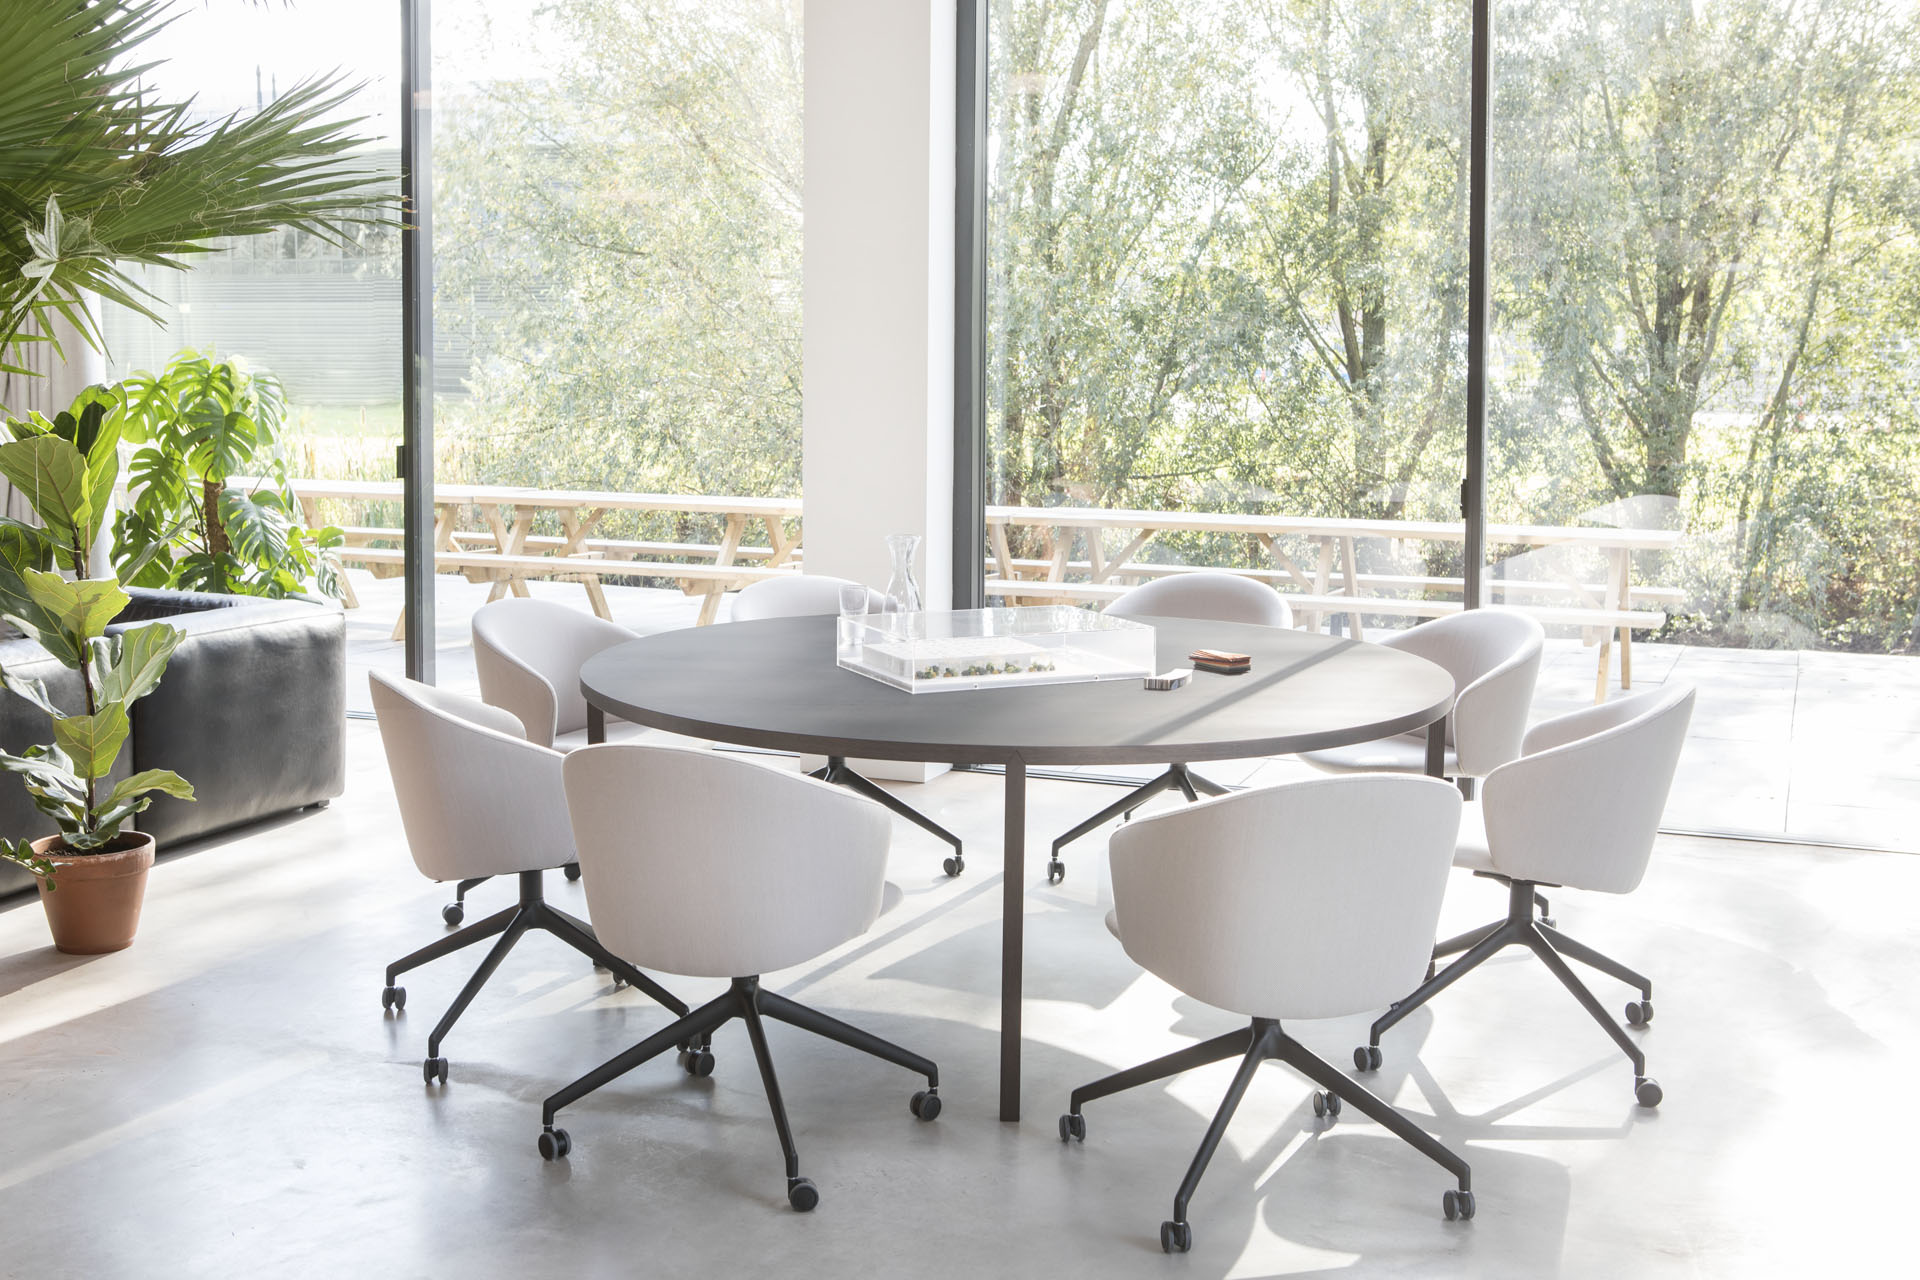 Slim+ Round table by Arco